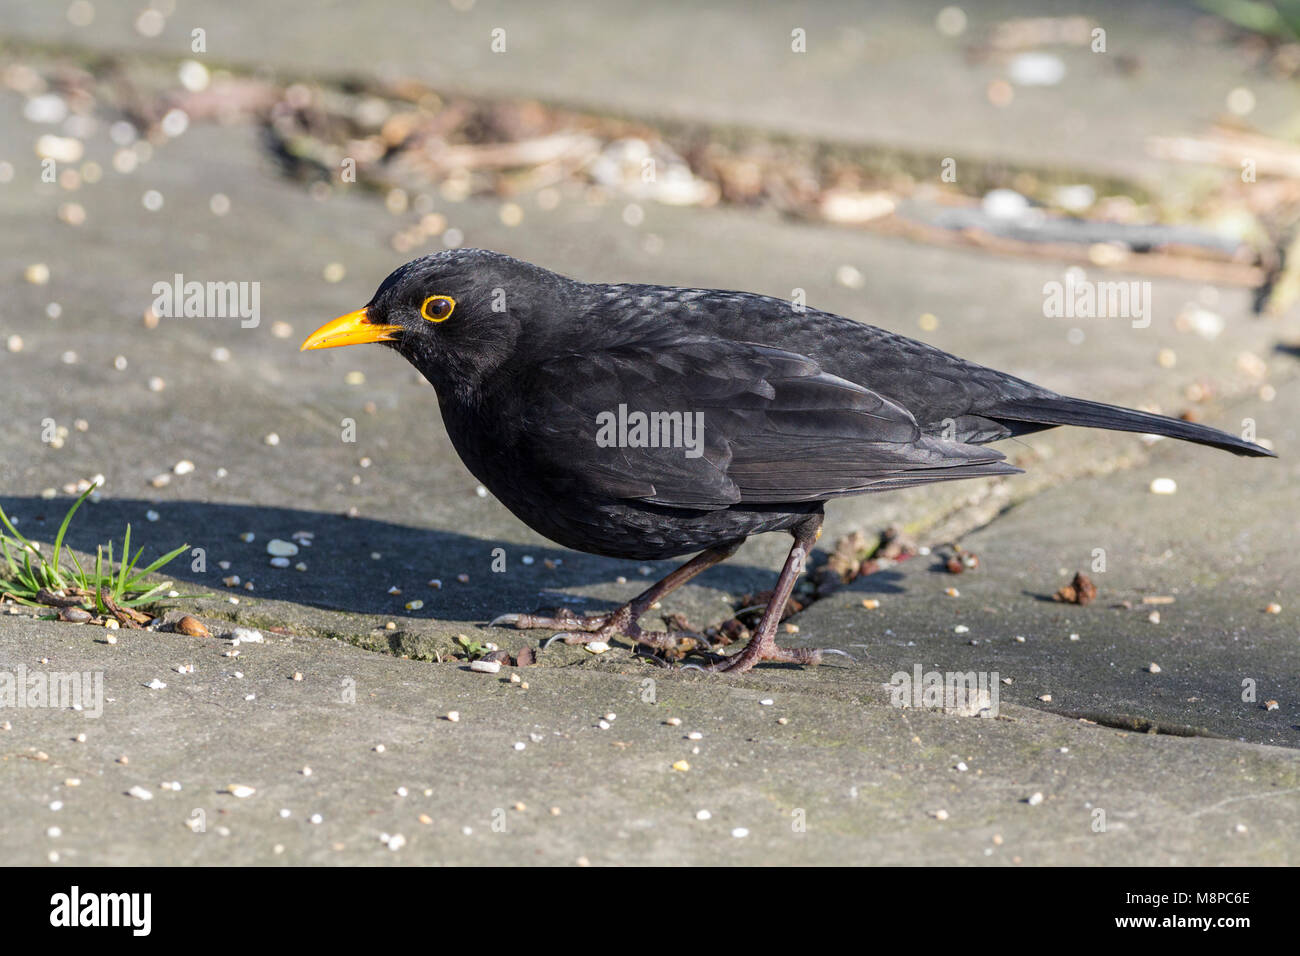 Black bird (Turdus merula) Feeding on mixed seed scattered on pavement near Arundel castle in February 2018 while - Stock Image